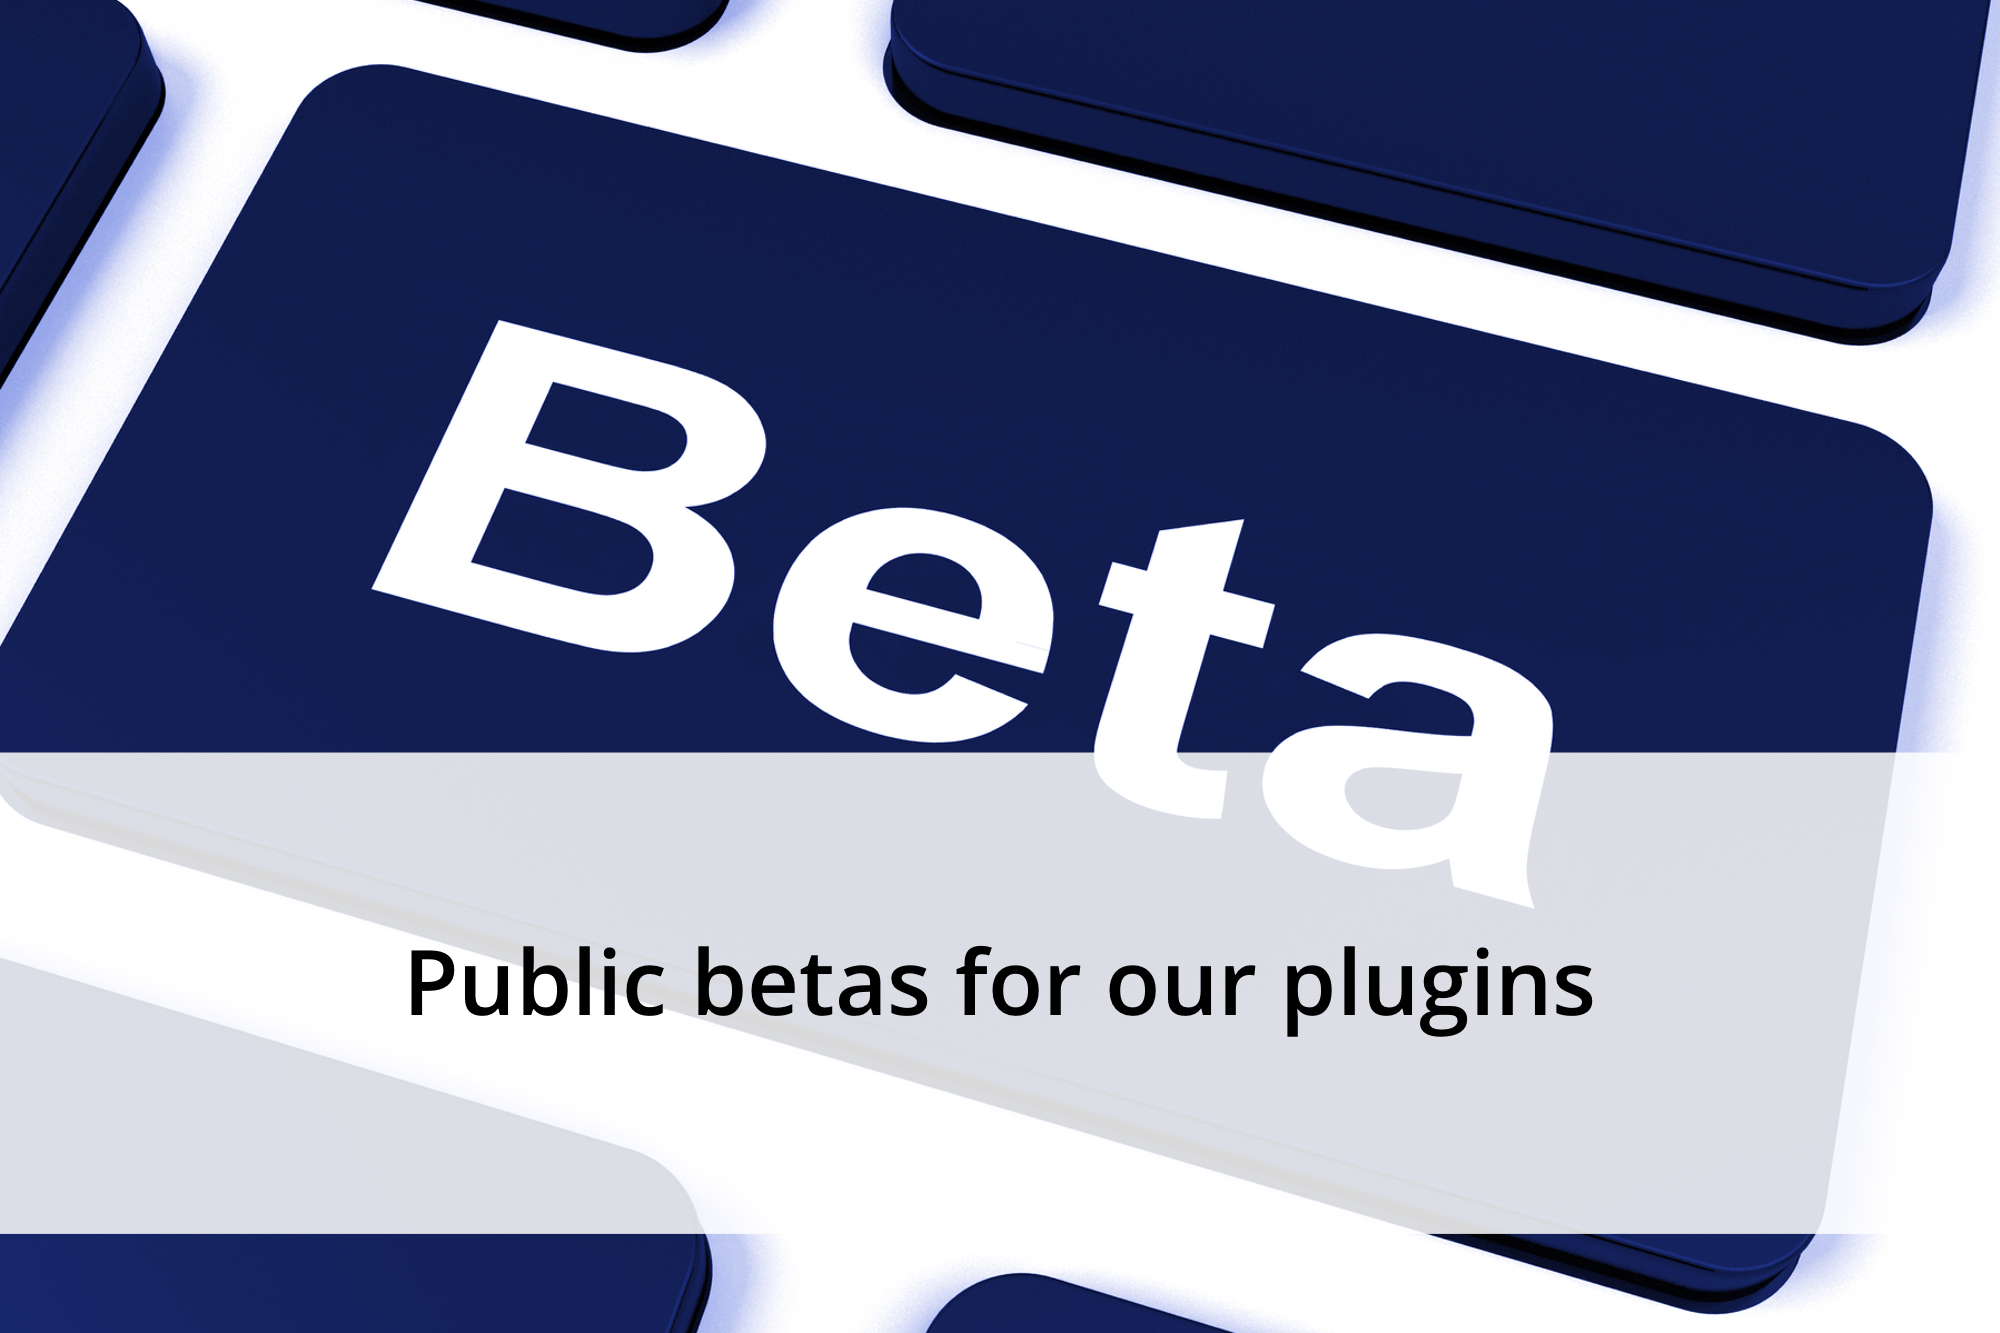 public betas for our plugins